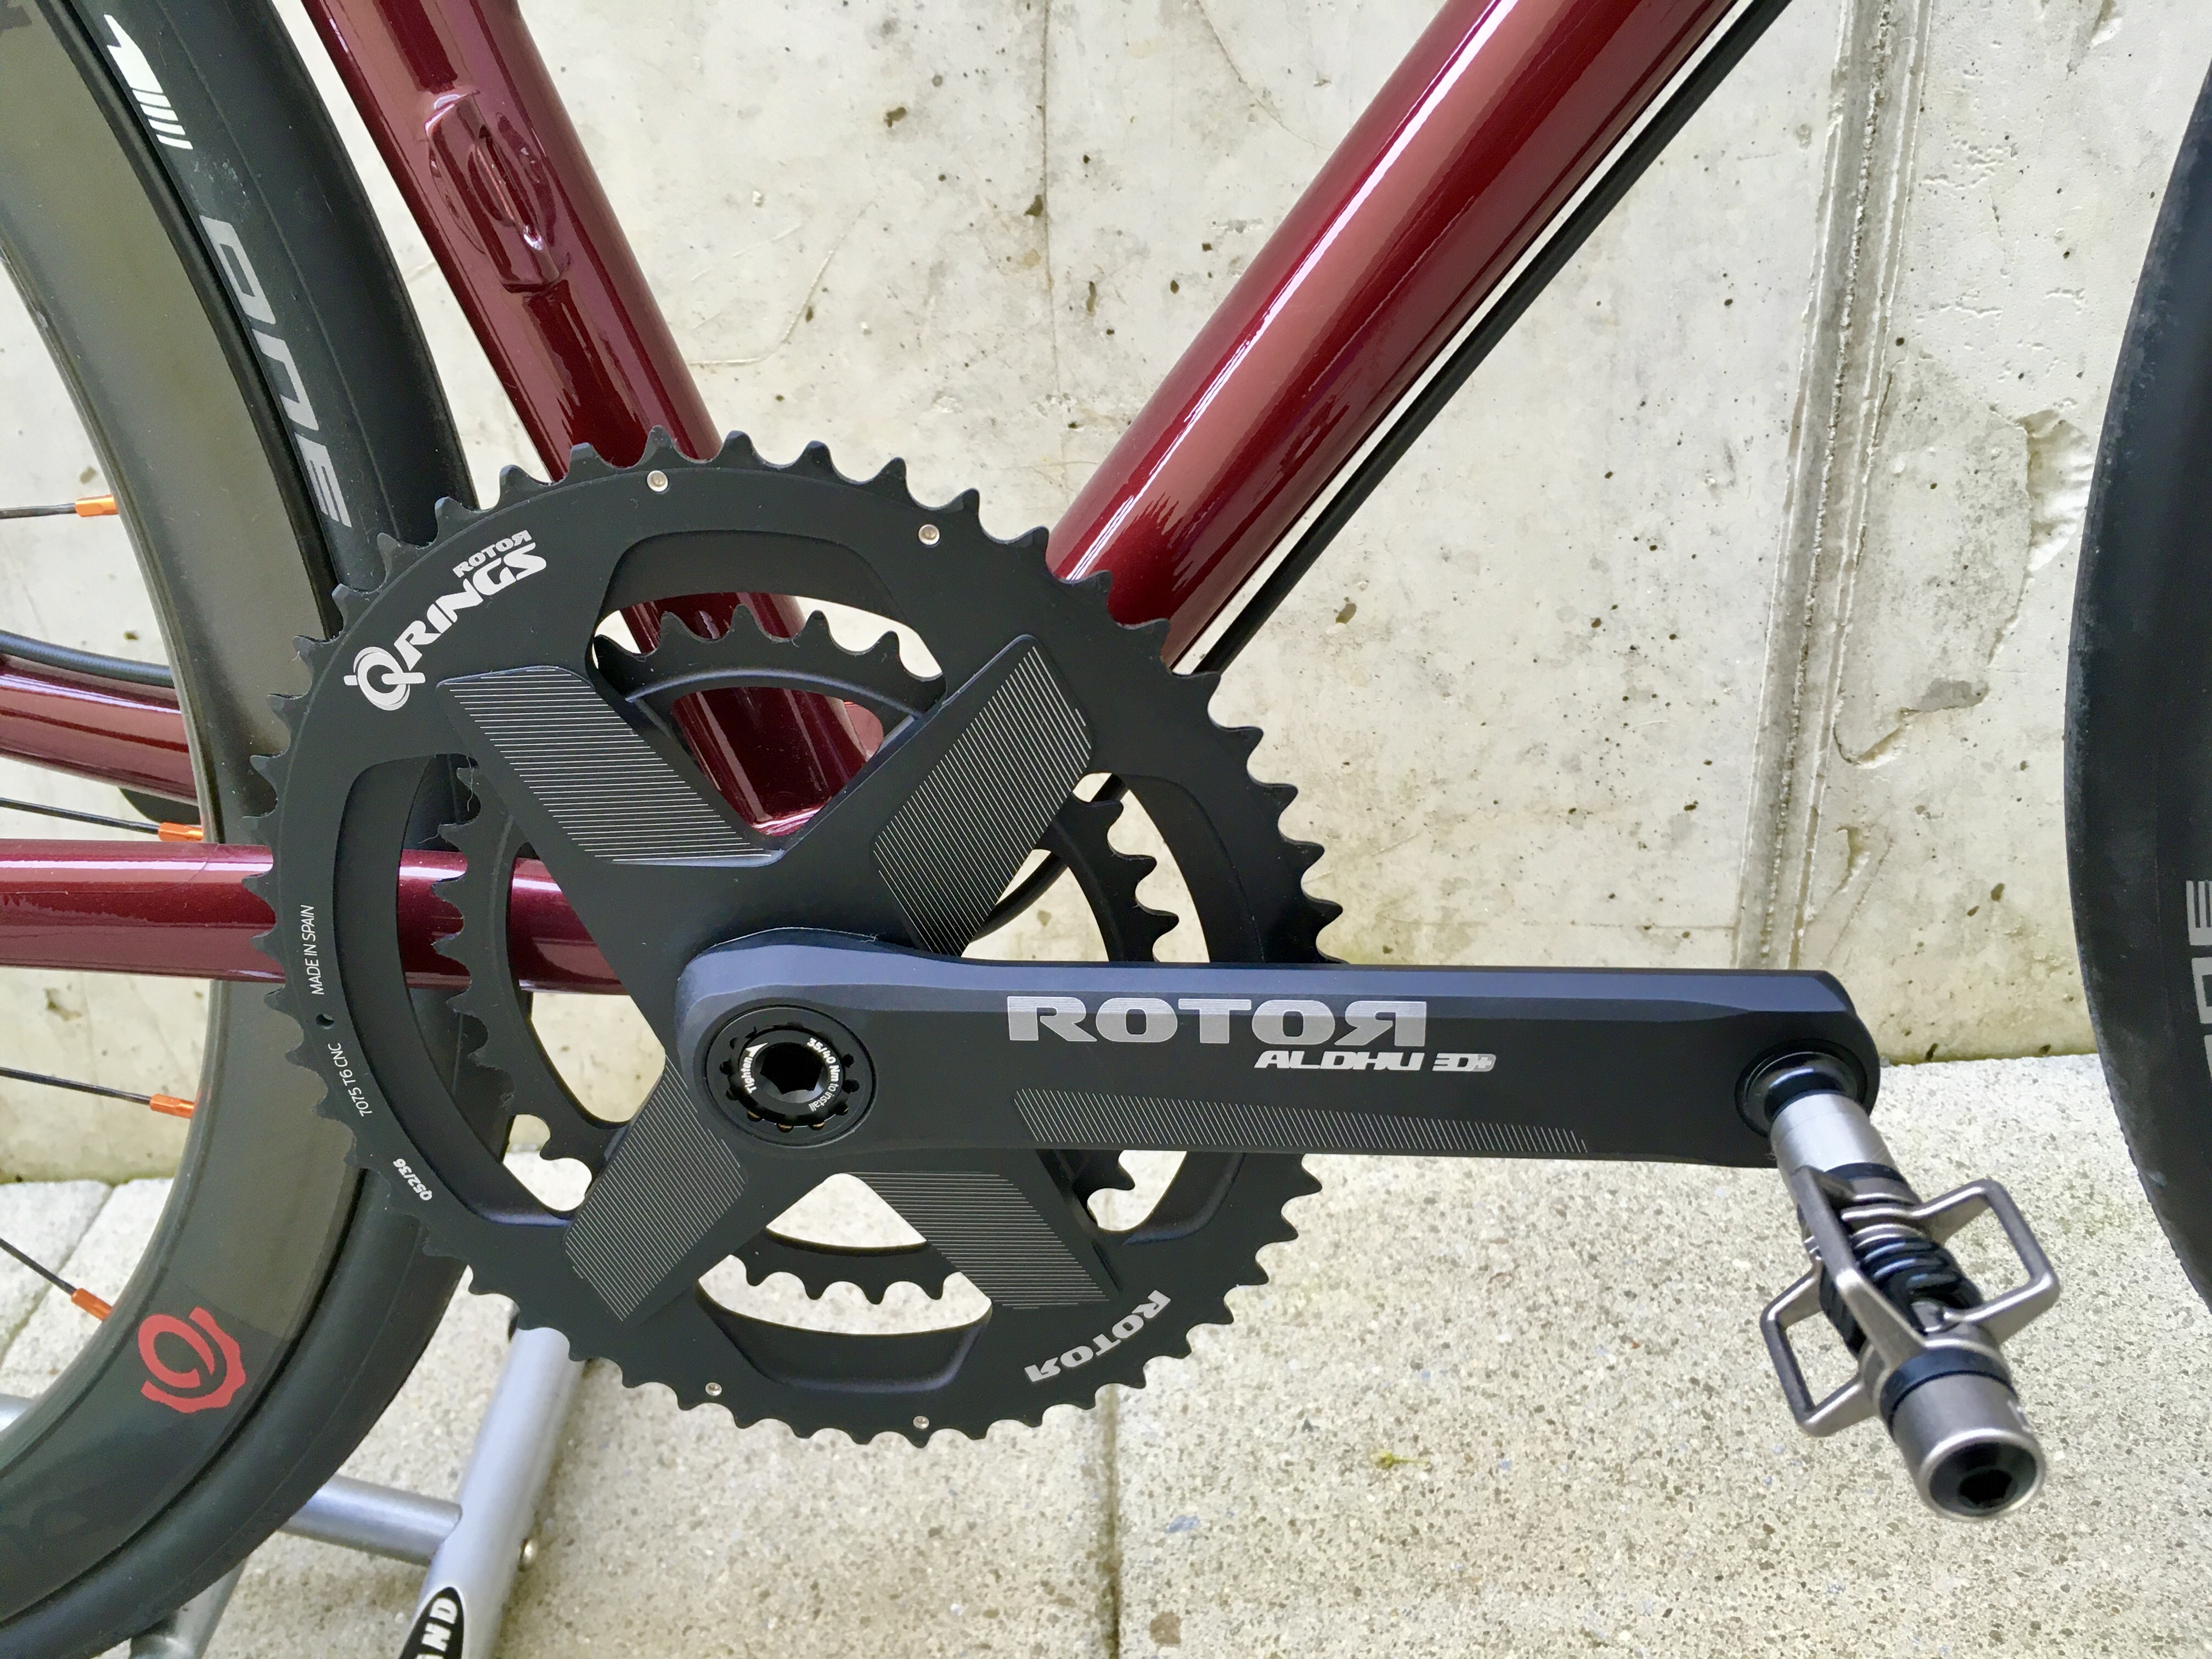 Rotor Q-Rings oval chainrings.